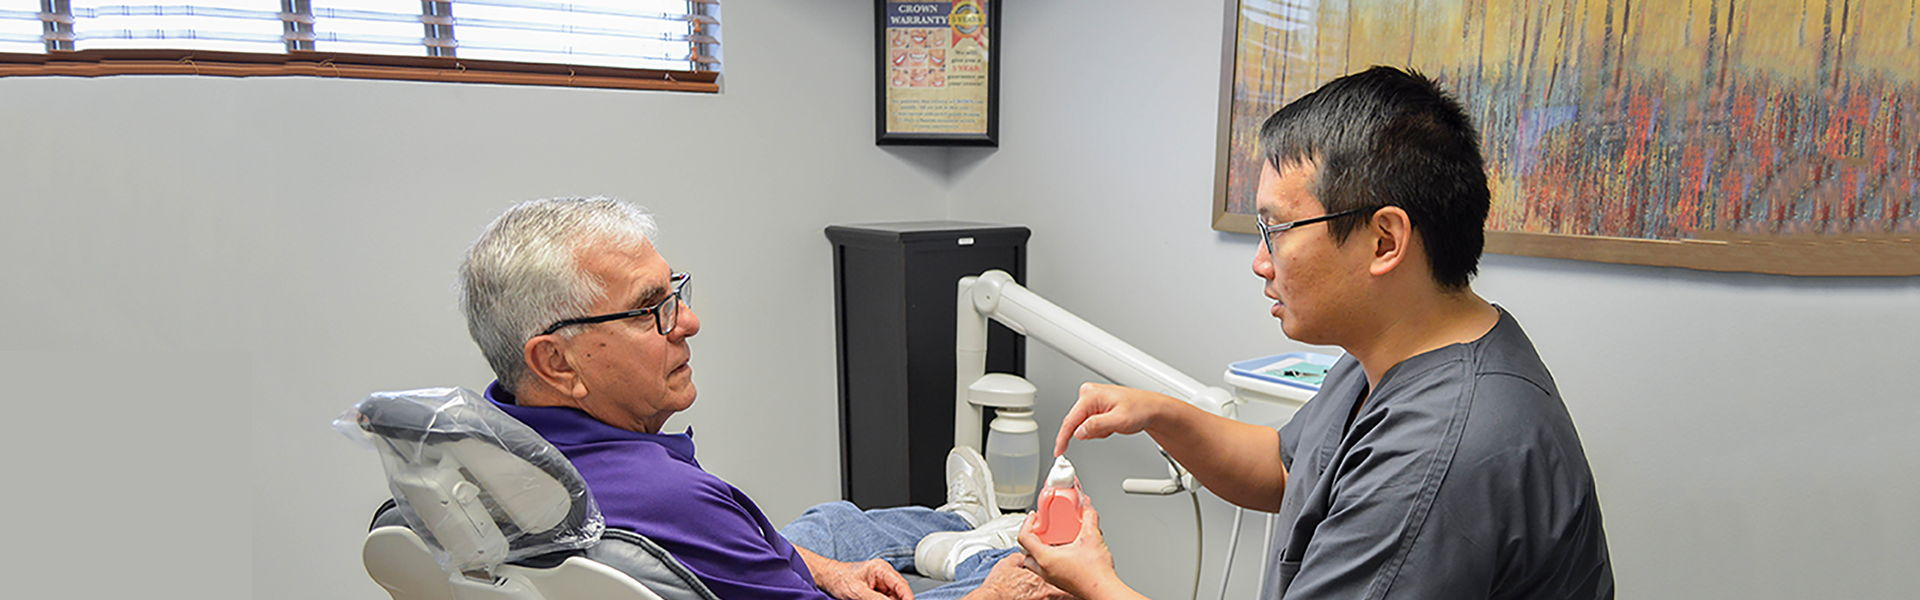 Dentures at Bencaz Family Dentistry Denham Springs, LA